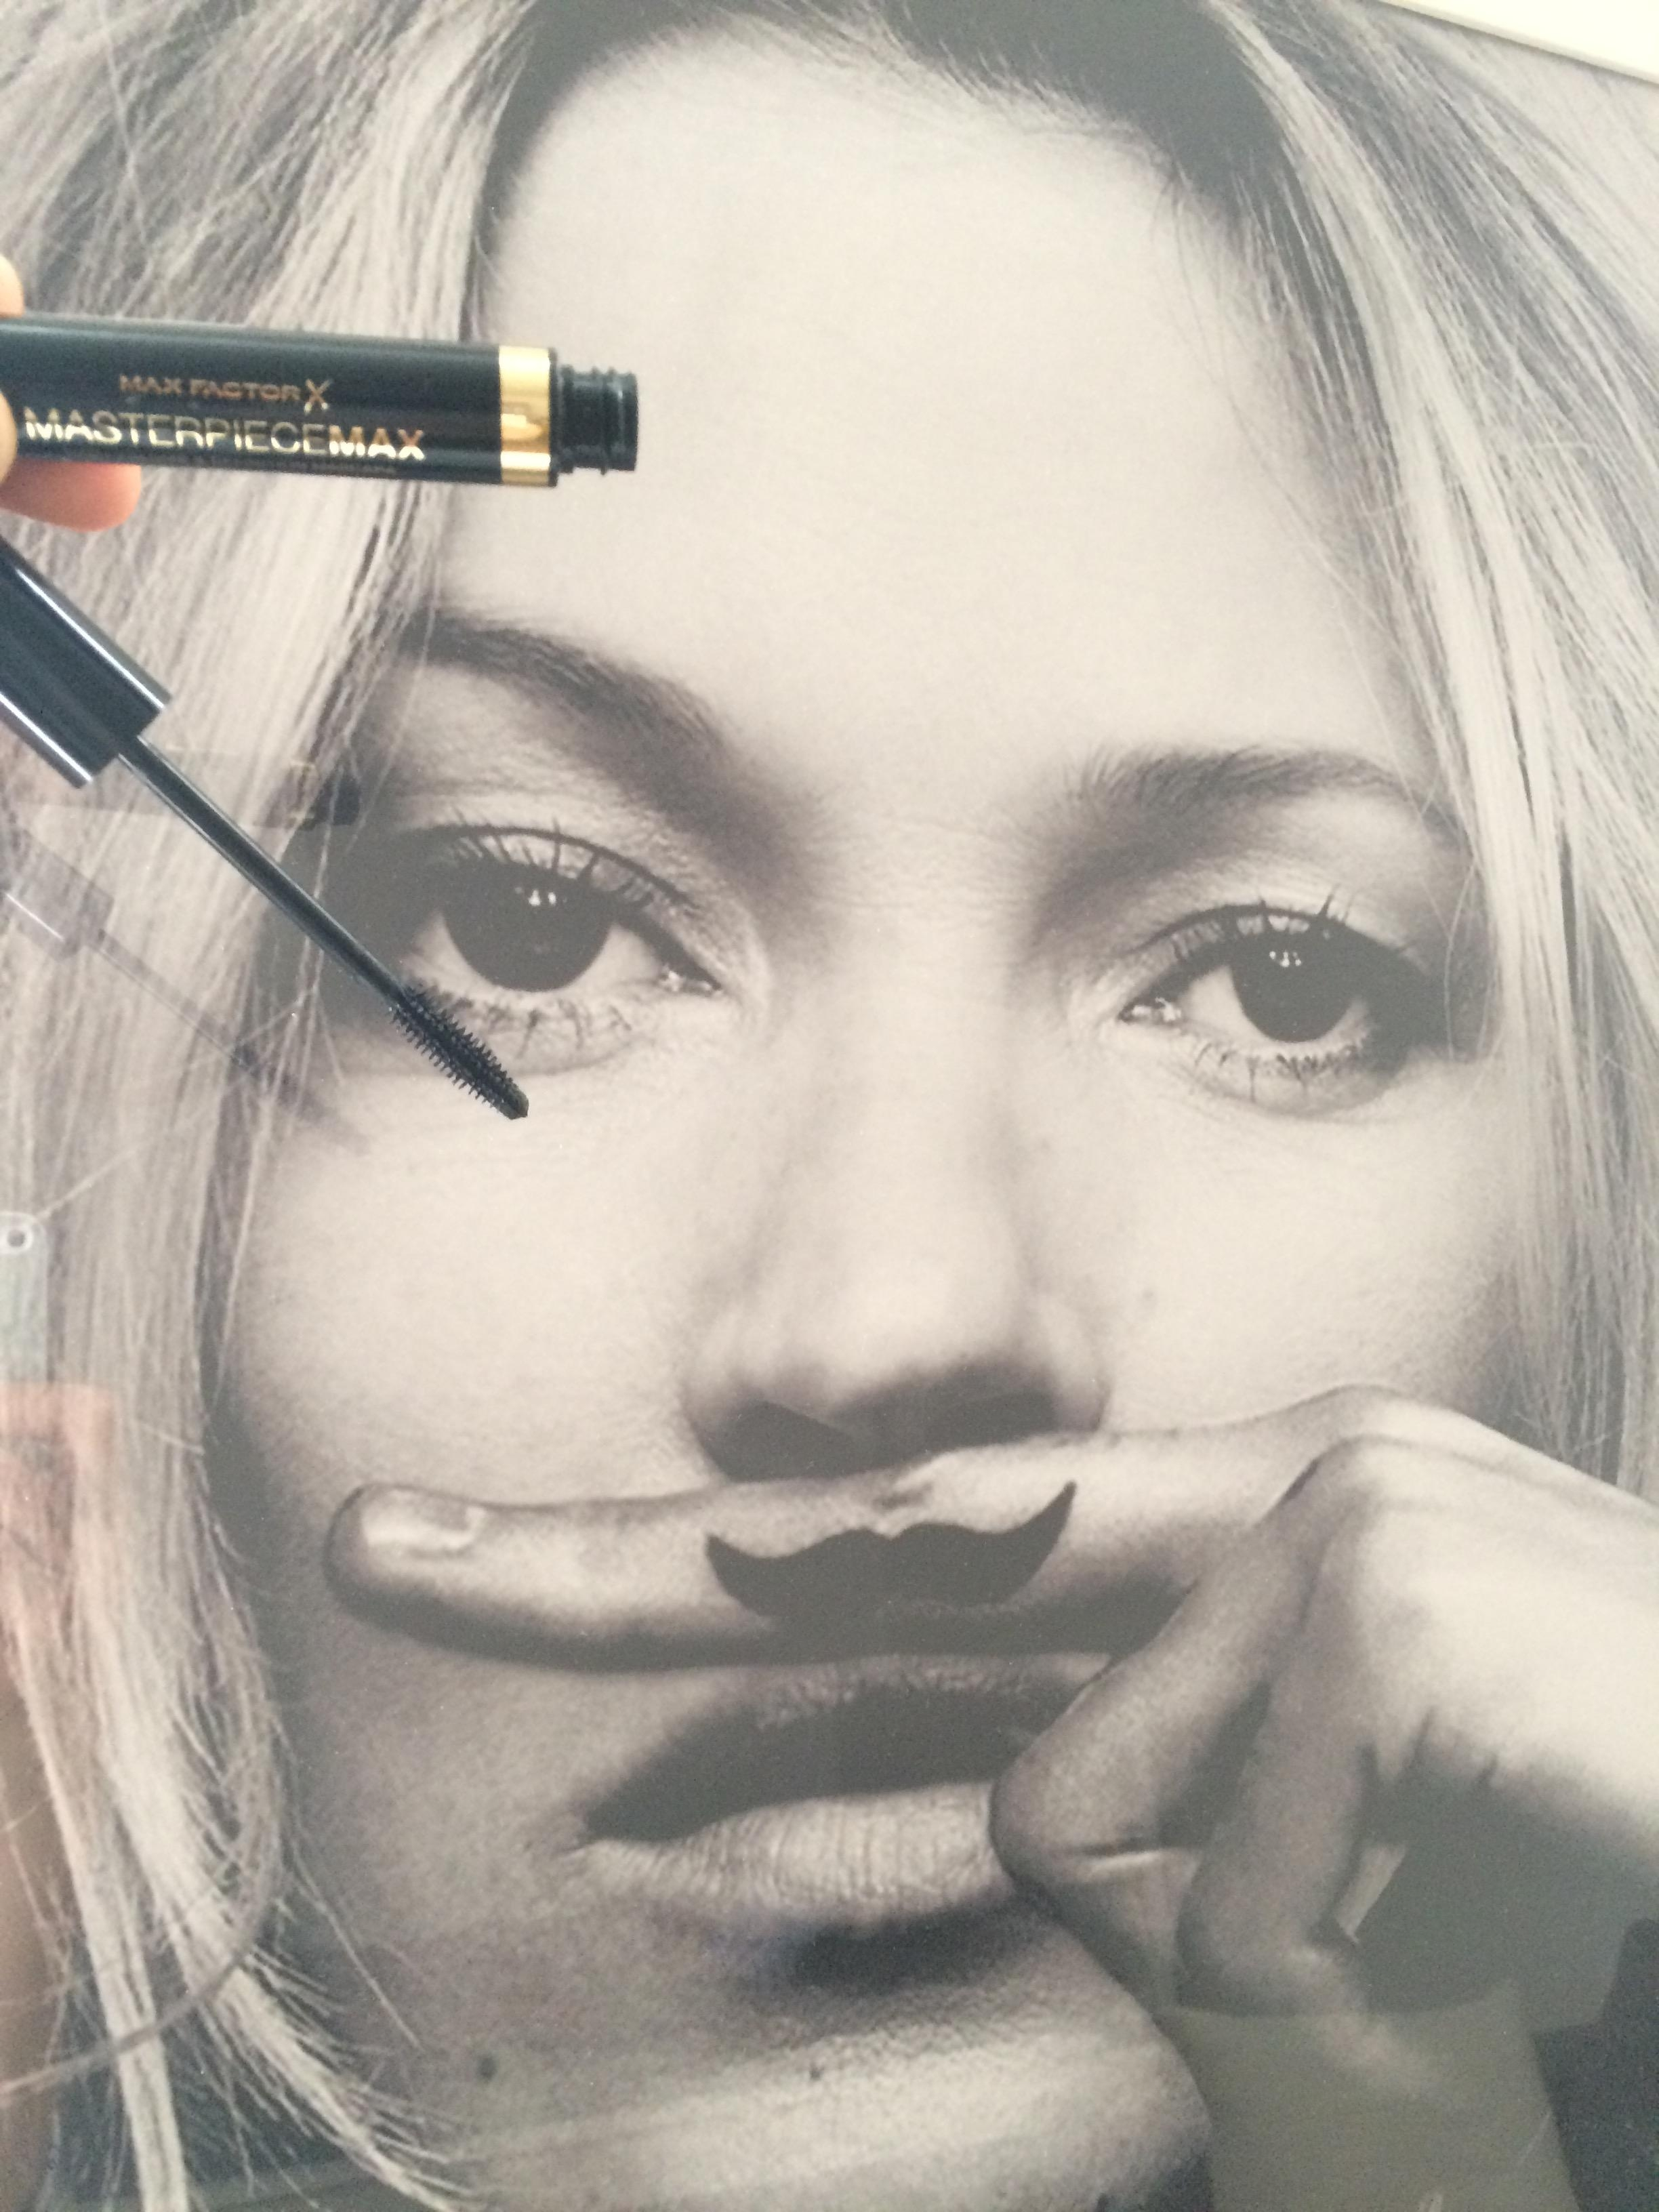 Two Masterpieces: Kate & Max Factor. #beautychallenge #mascara